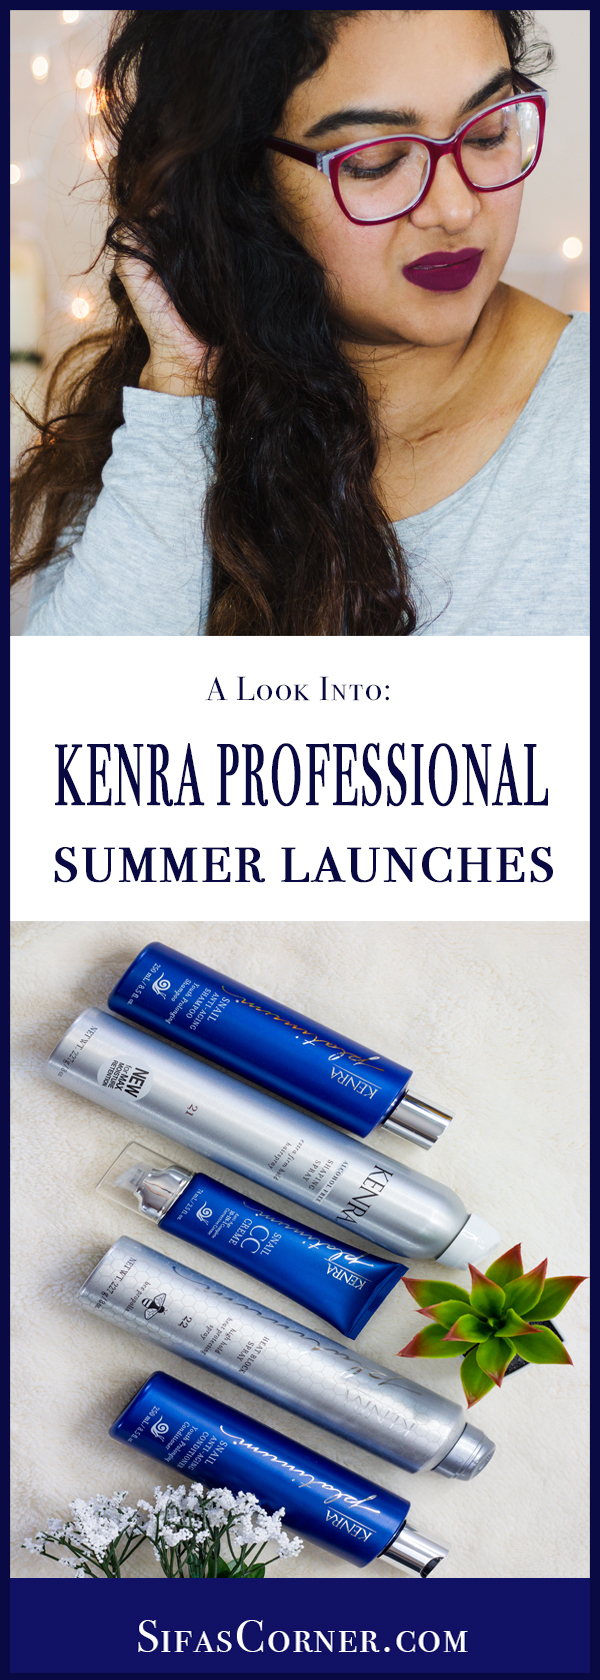 KENRA PROFESSIONAL New Summer Launches